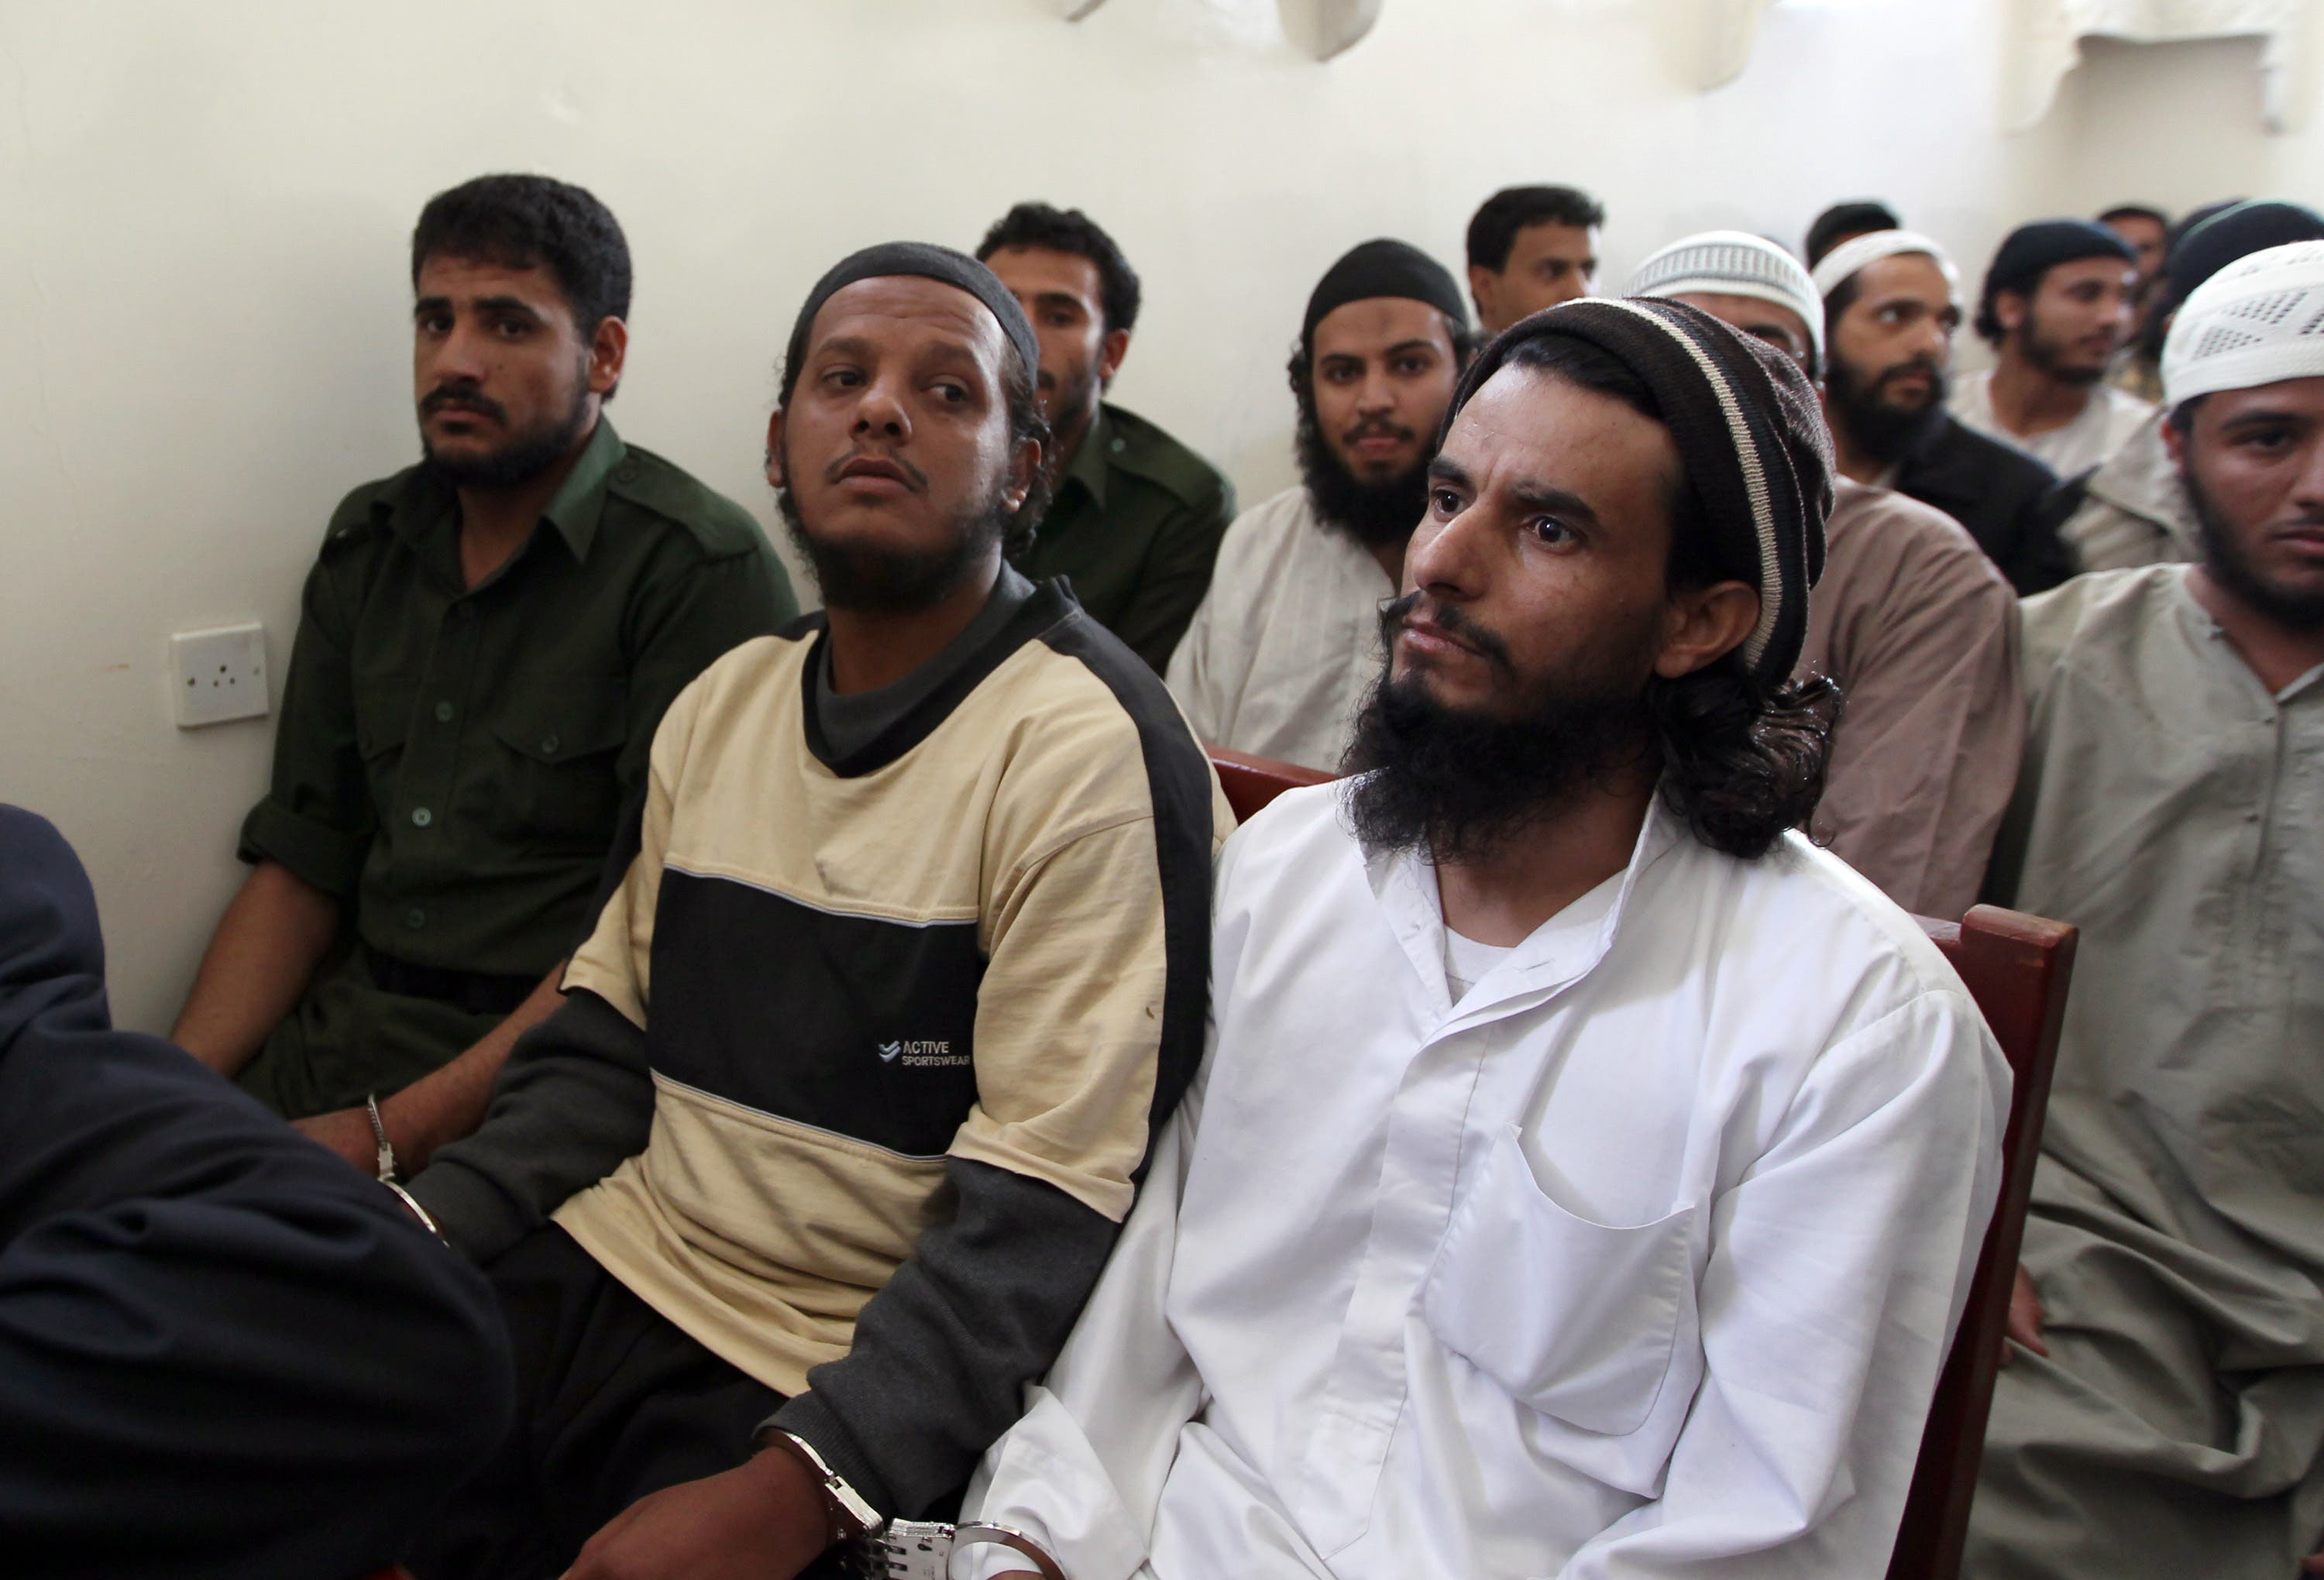 Suspected al-Qaeda militants attend their trial at a state security court in Sana'a on Tuesday. Photo for illustration purposes only. (Mohammed Huwais/AFP)